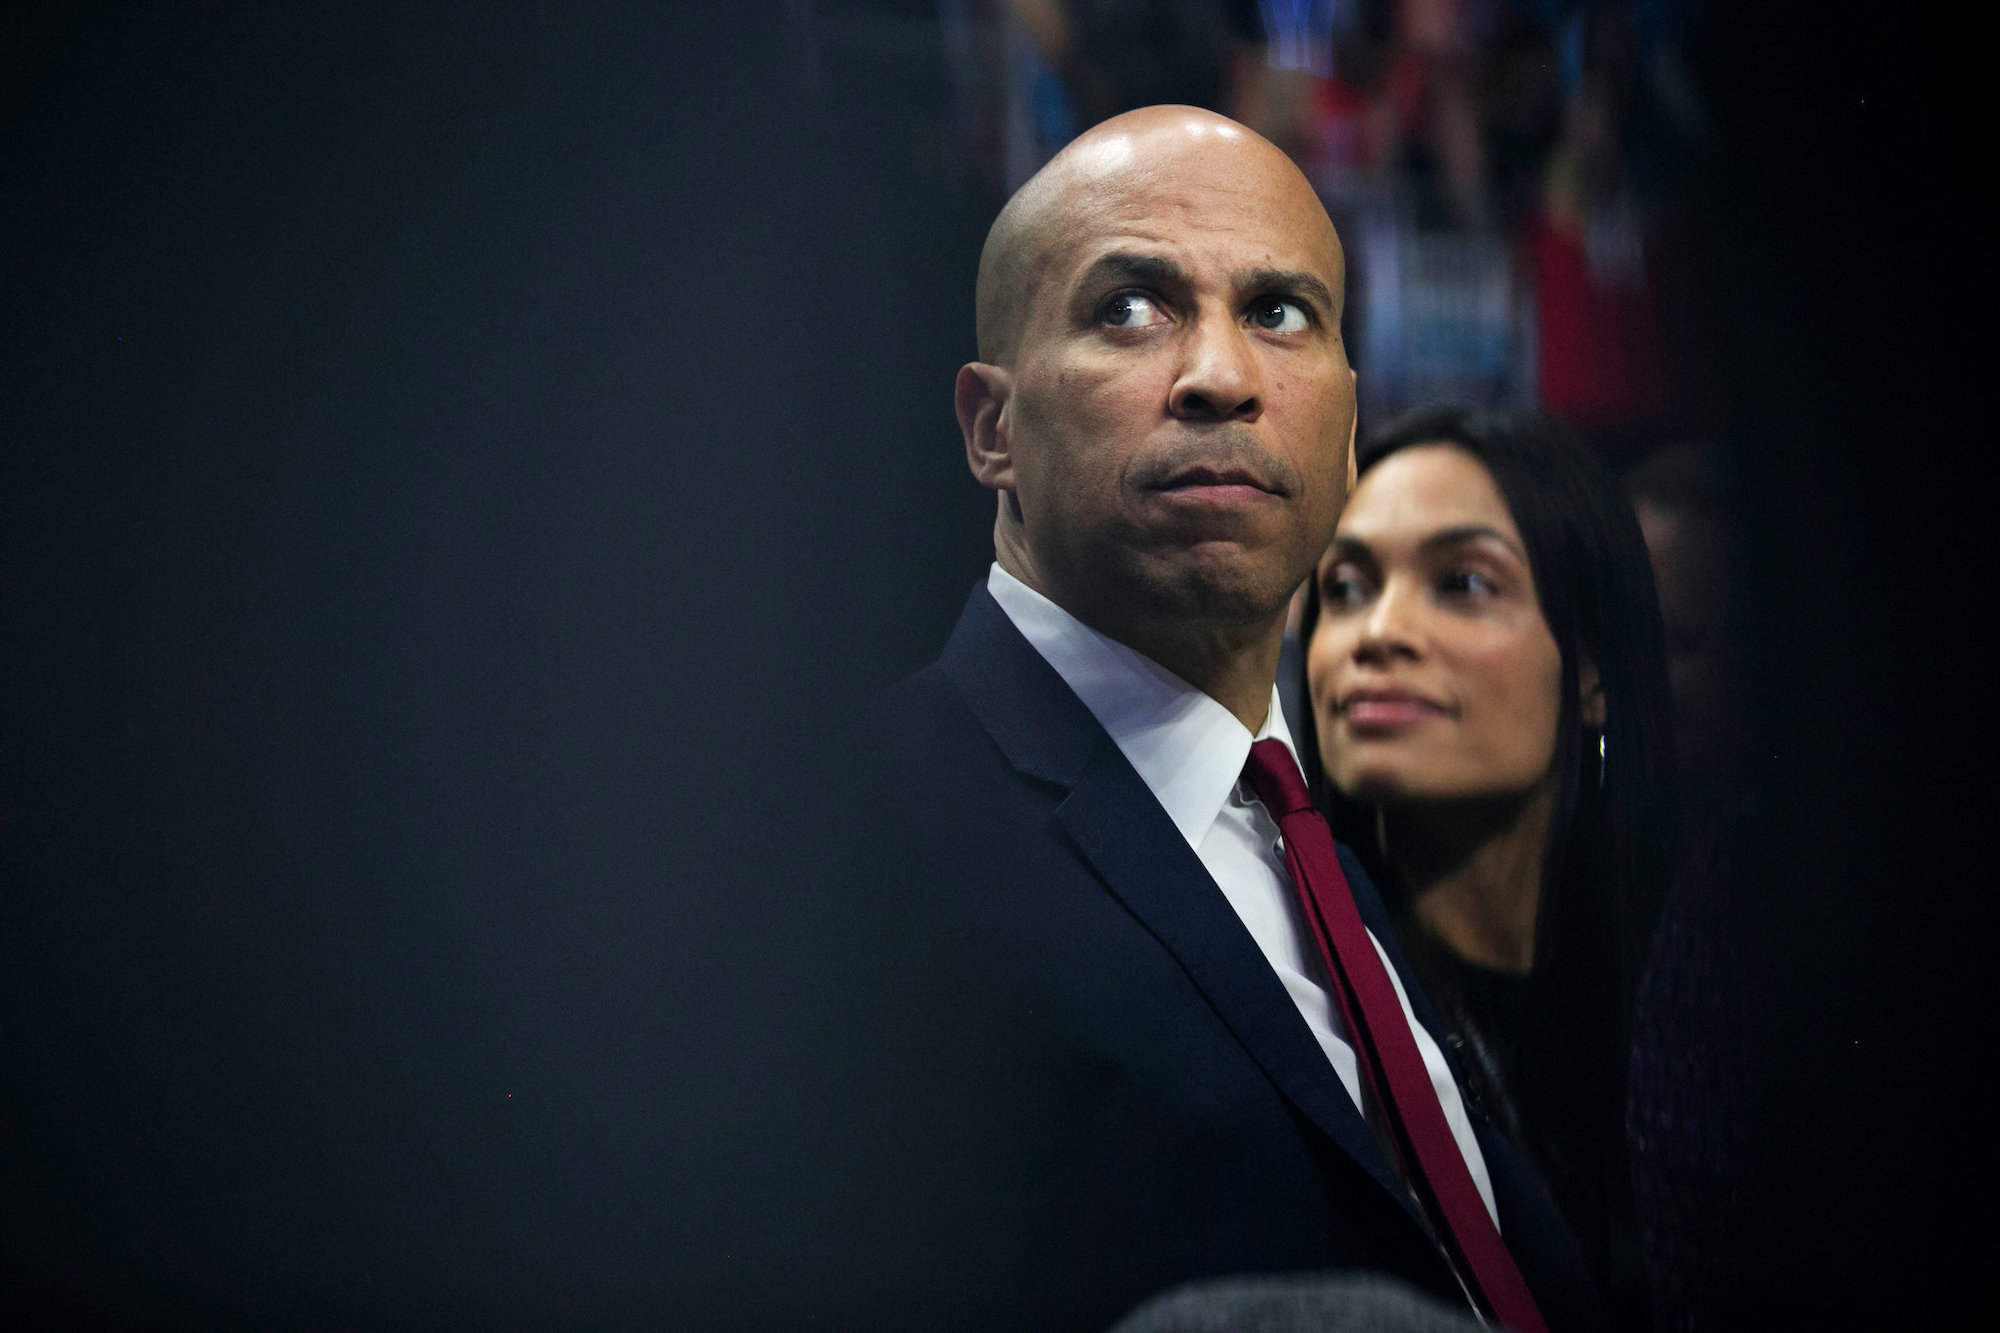 Cory Booker, Democratic Presidential Race, African American Vote, Black Vote, African American Politics, Black Politics, KOLUMN Magazine, KOLUMN, KINDR'D Magazine, KINDR'D, Willoughby Avenue, Wriit,